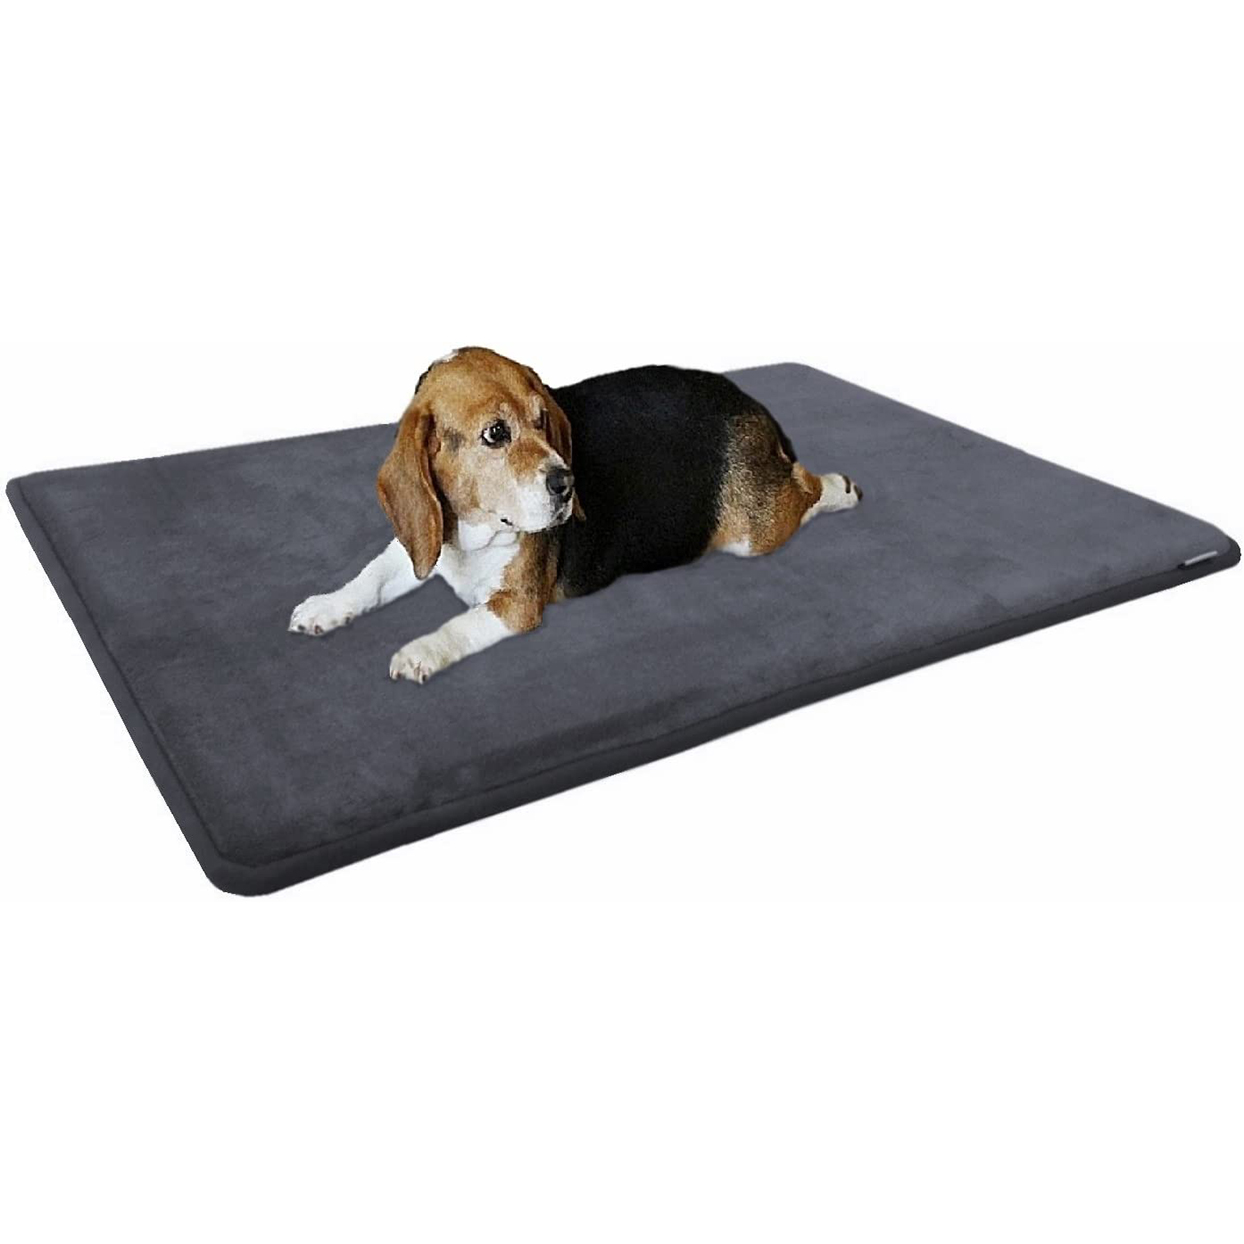 Dogbed4less Memory Foam Gel Cooling Bed